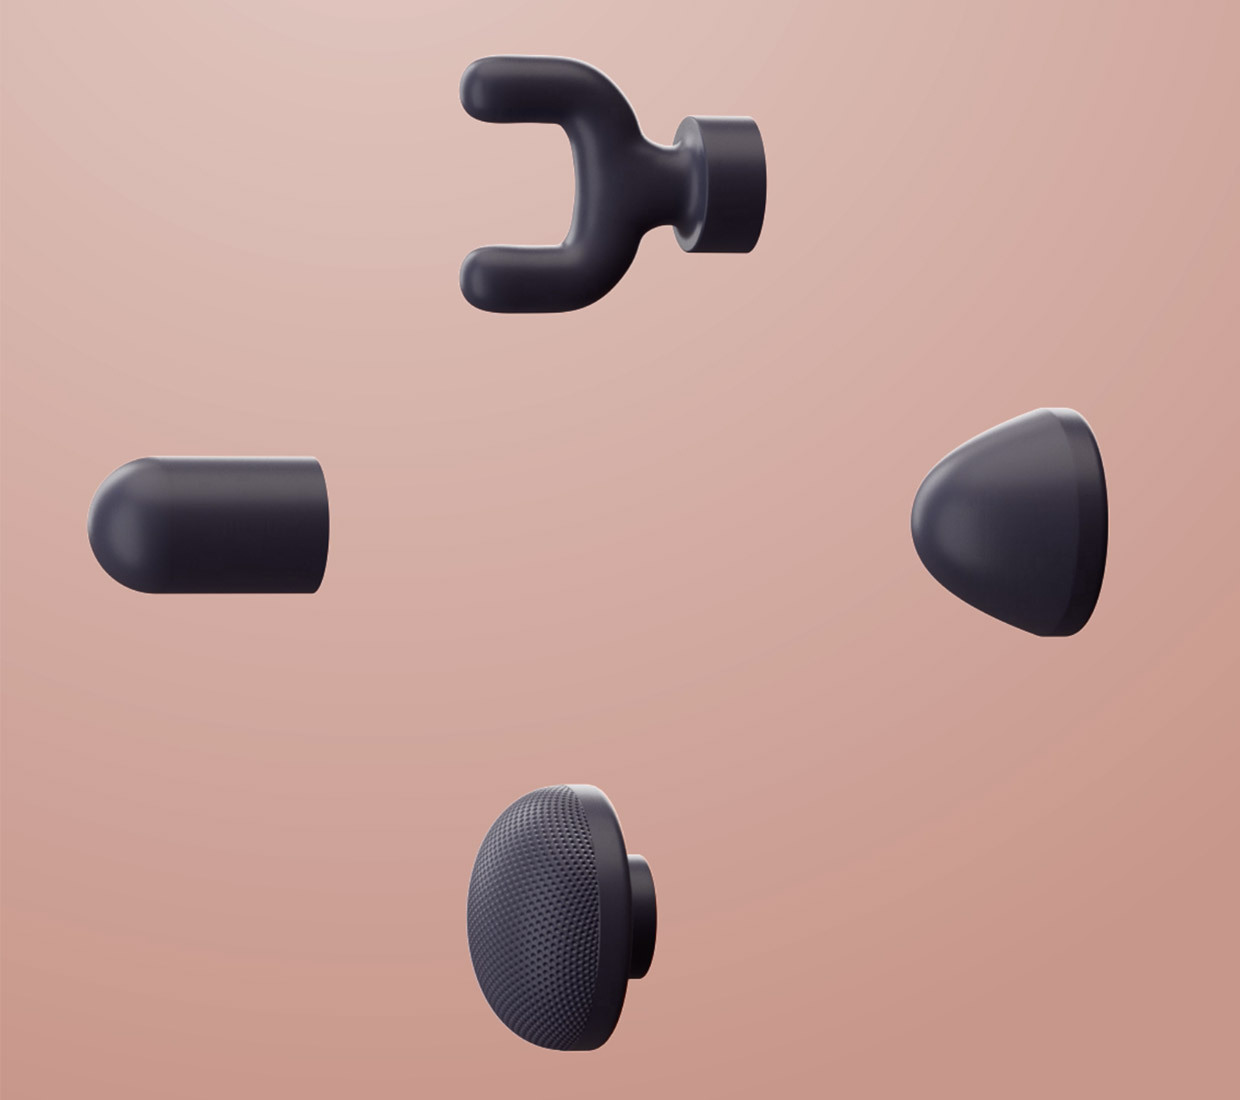 A detail image of the four specialty massage therapy attachments included with the Lyric massager